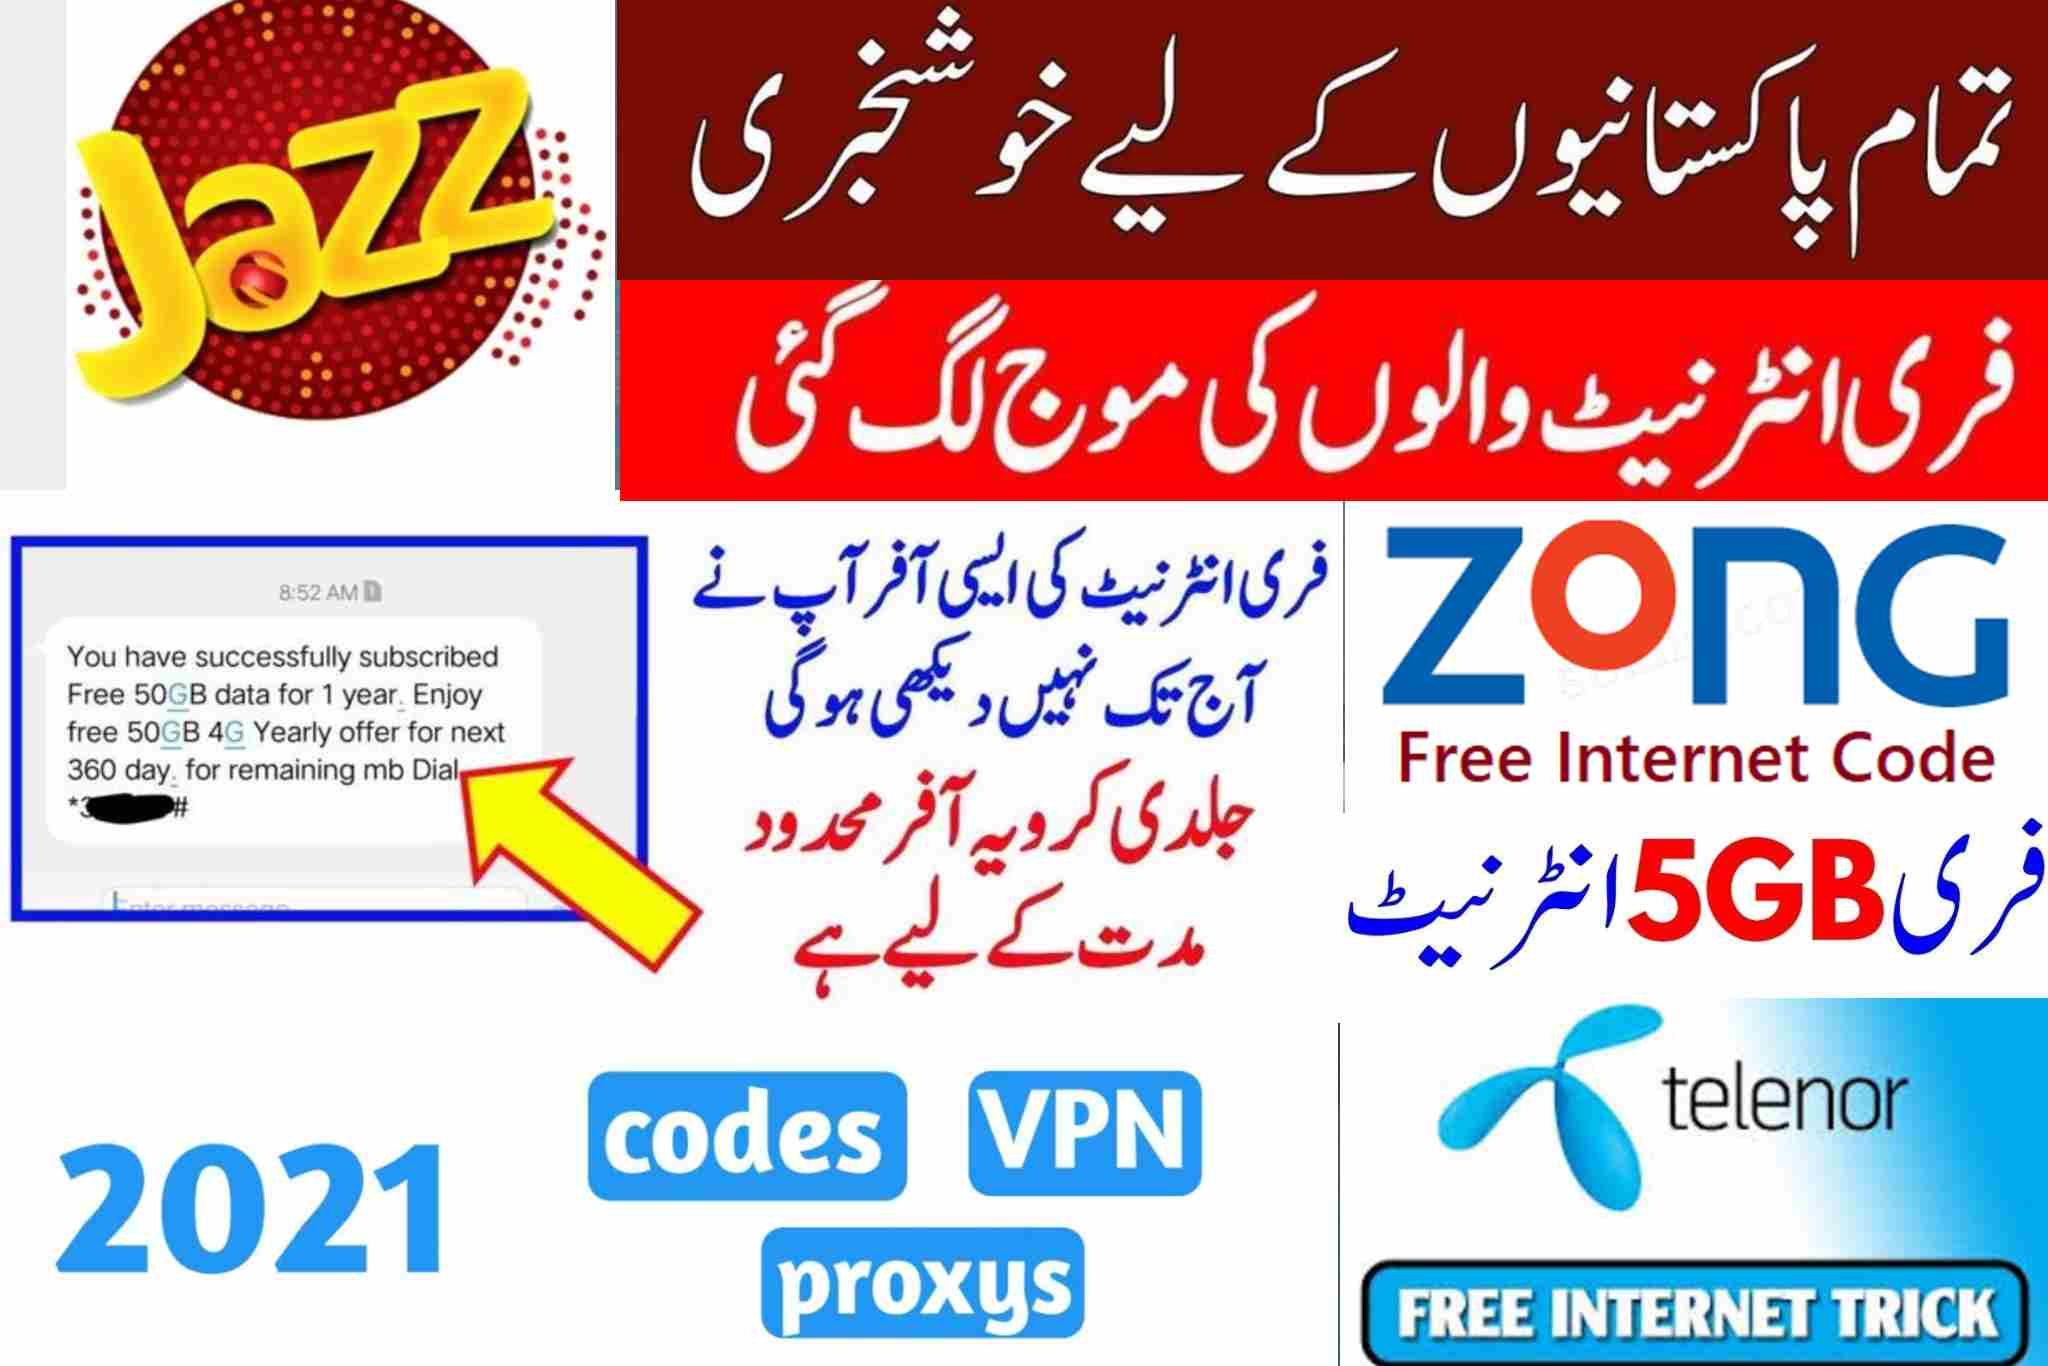 Free Internet Code 2021 3G/4G Unlimted Internet Free 50 GB for all Networks